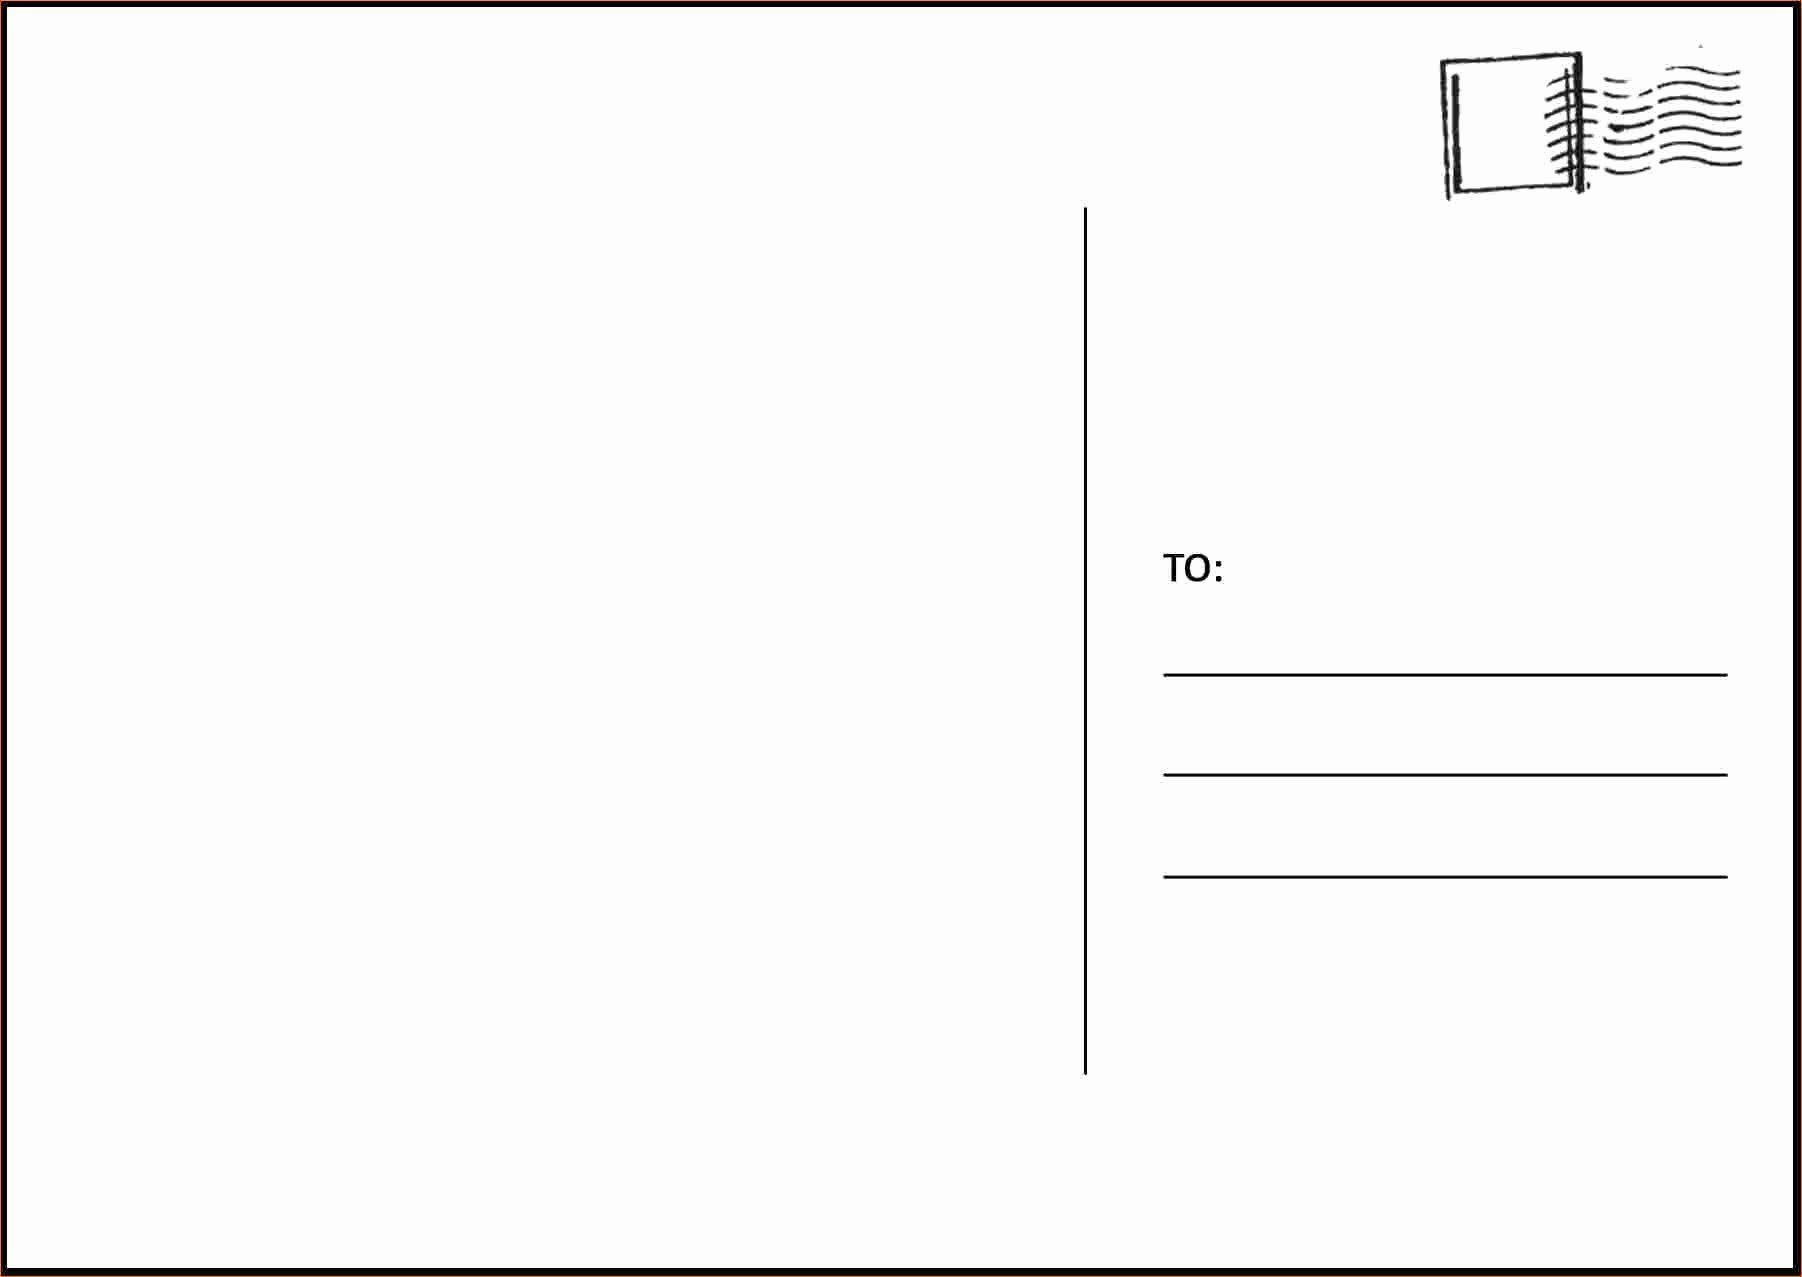 003 Unusual Free Postcard Template Download Microsoft Word Highest Quality Full